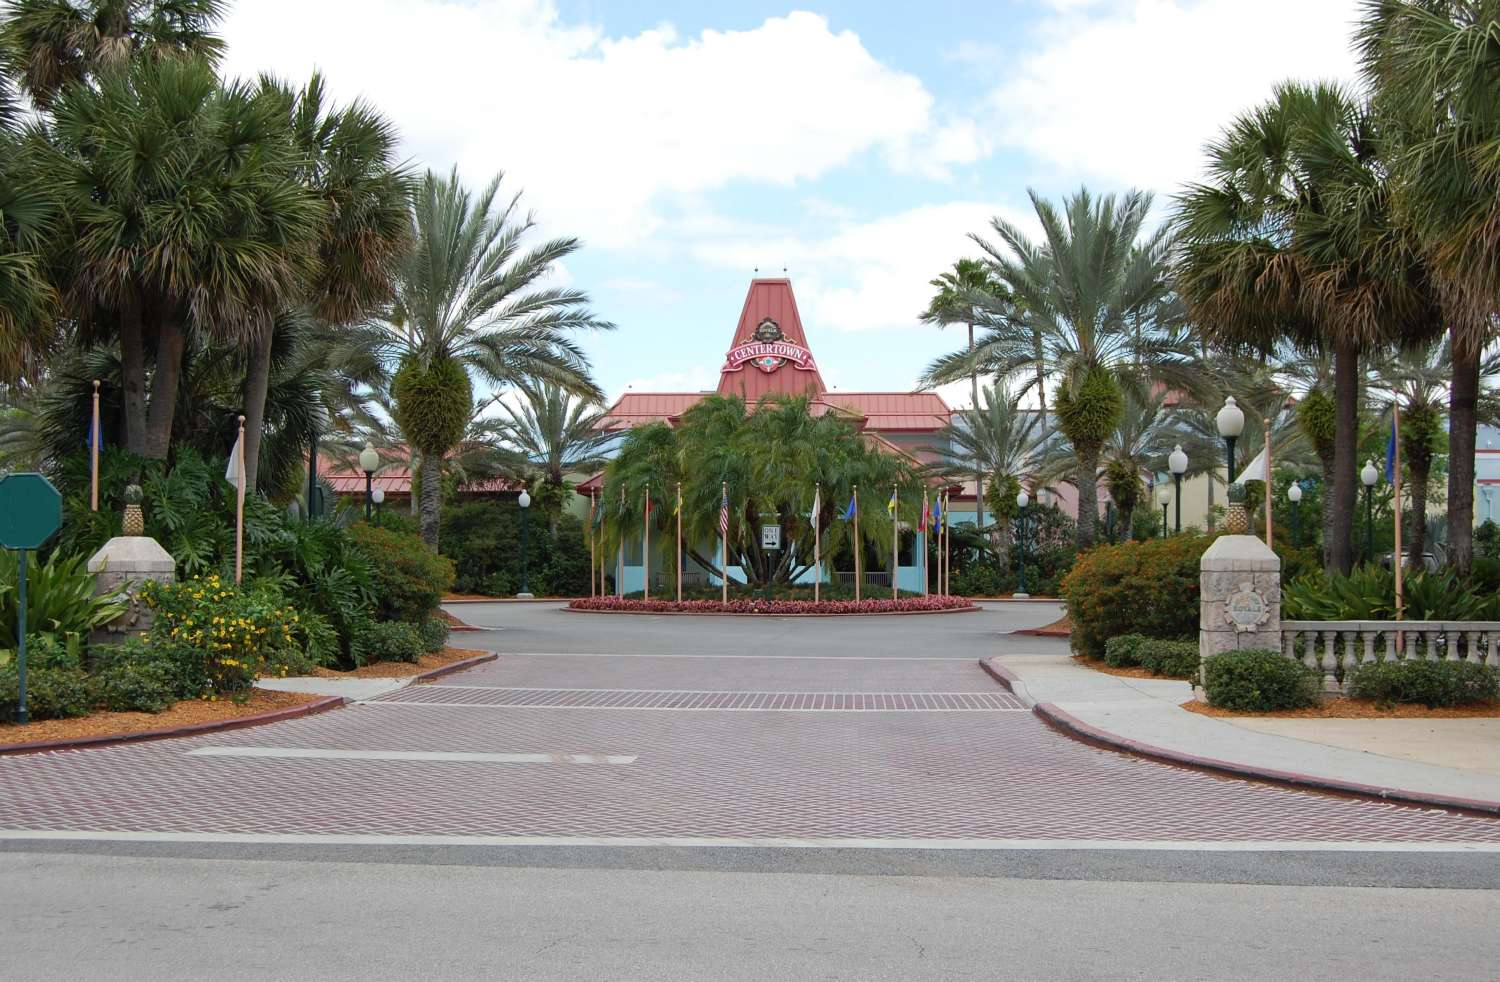 Disney's-Caribbean-Beach-Resort-Center-Town.jpg